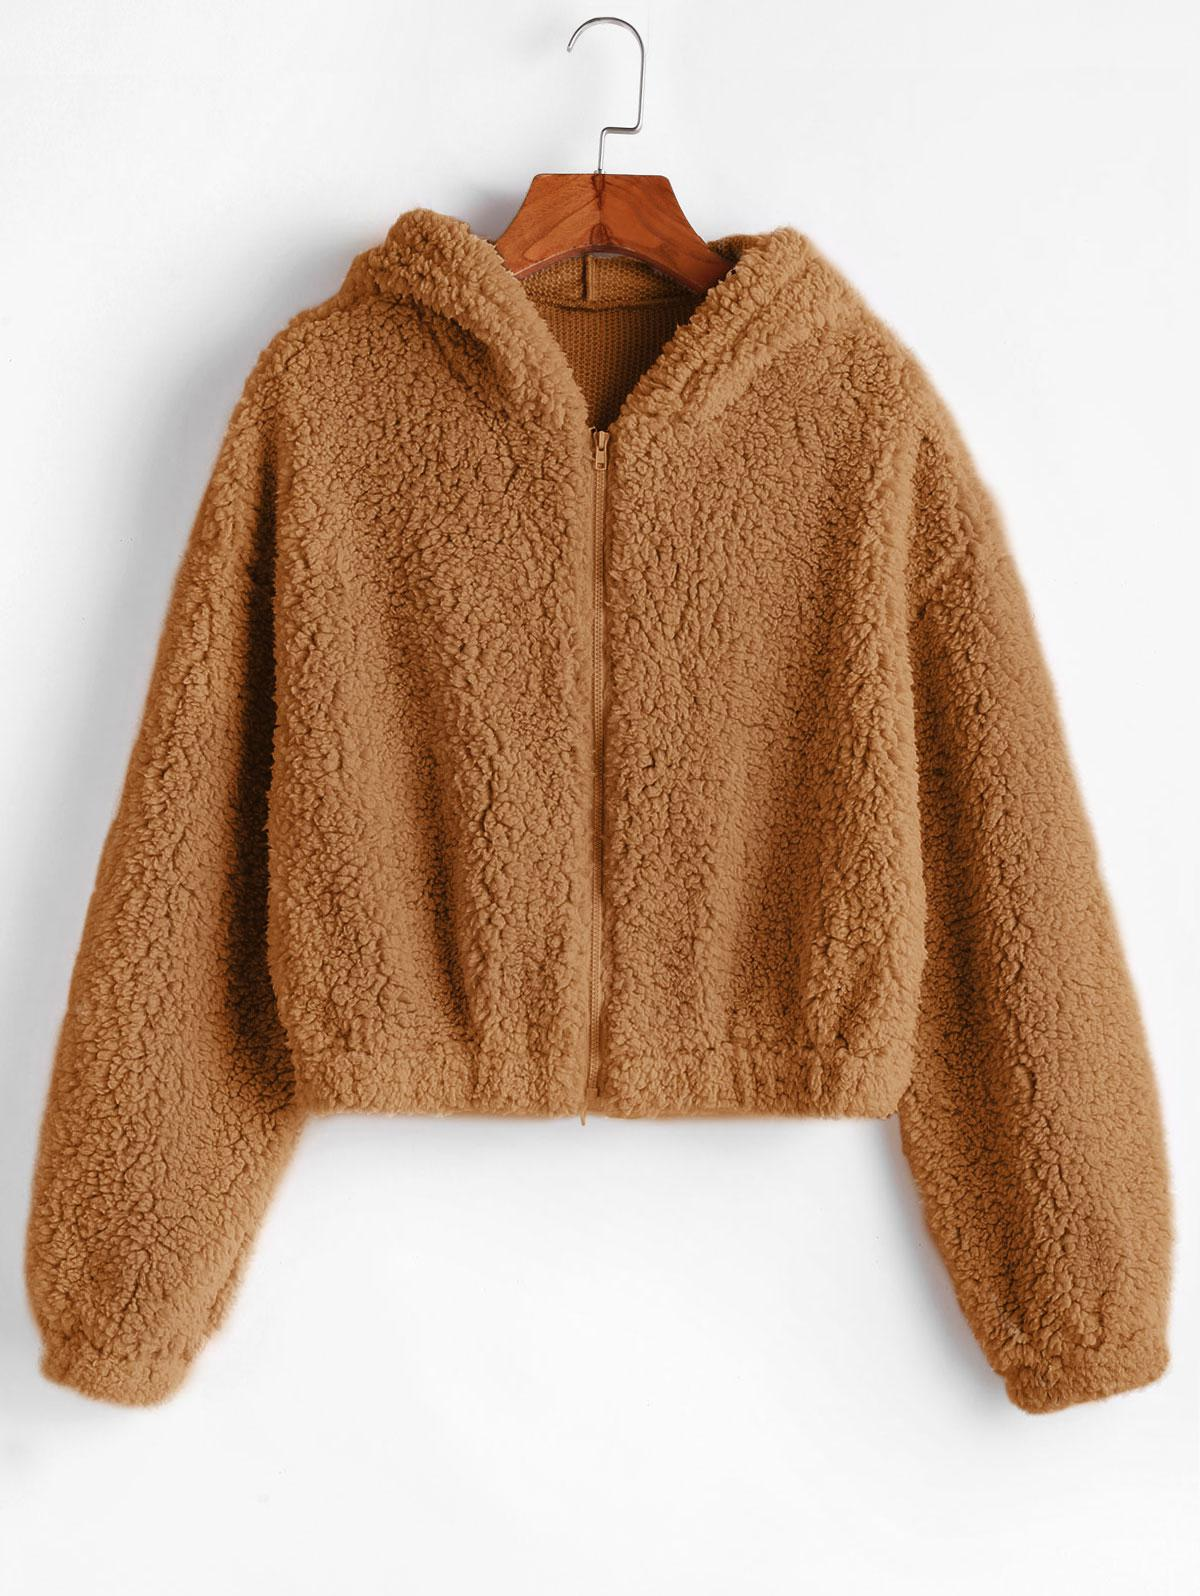 ZAFUL Hooded Zip Up Fluffy Teddy Jacket, Caramel